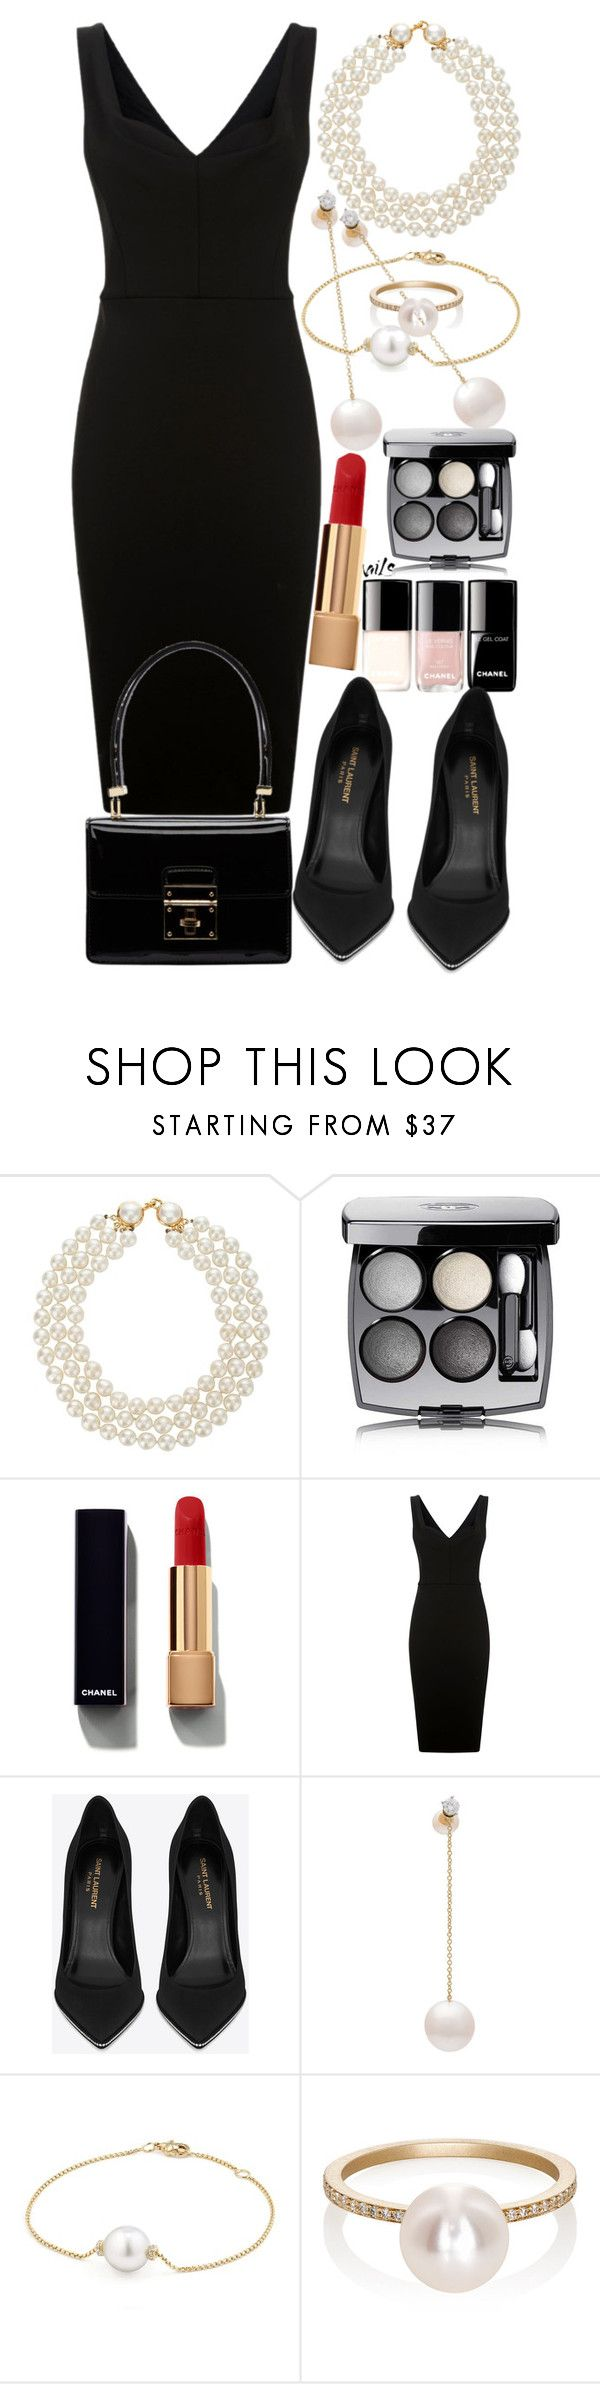 """Chanel in business"" by mariamehau ❤ liked on Polyvore featuring Chanel, Victoria Beckham, Yves Saint Laurent, Delfina Delettrez, David Yurman, Sophie Bille Brahe and Dolce&Gabbana"